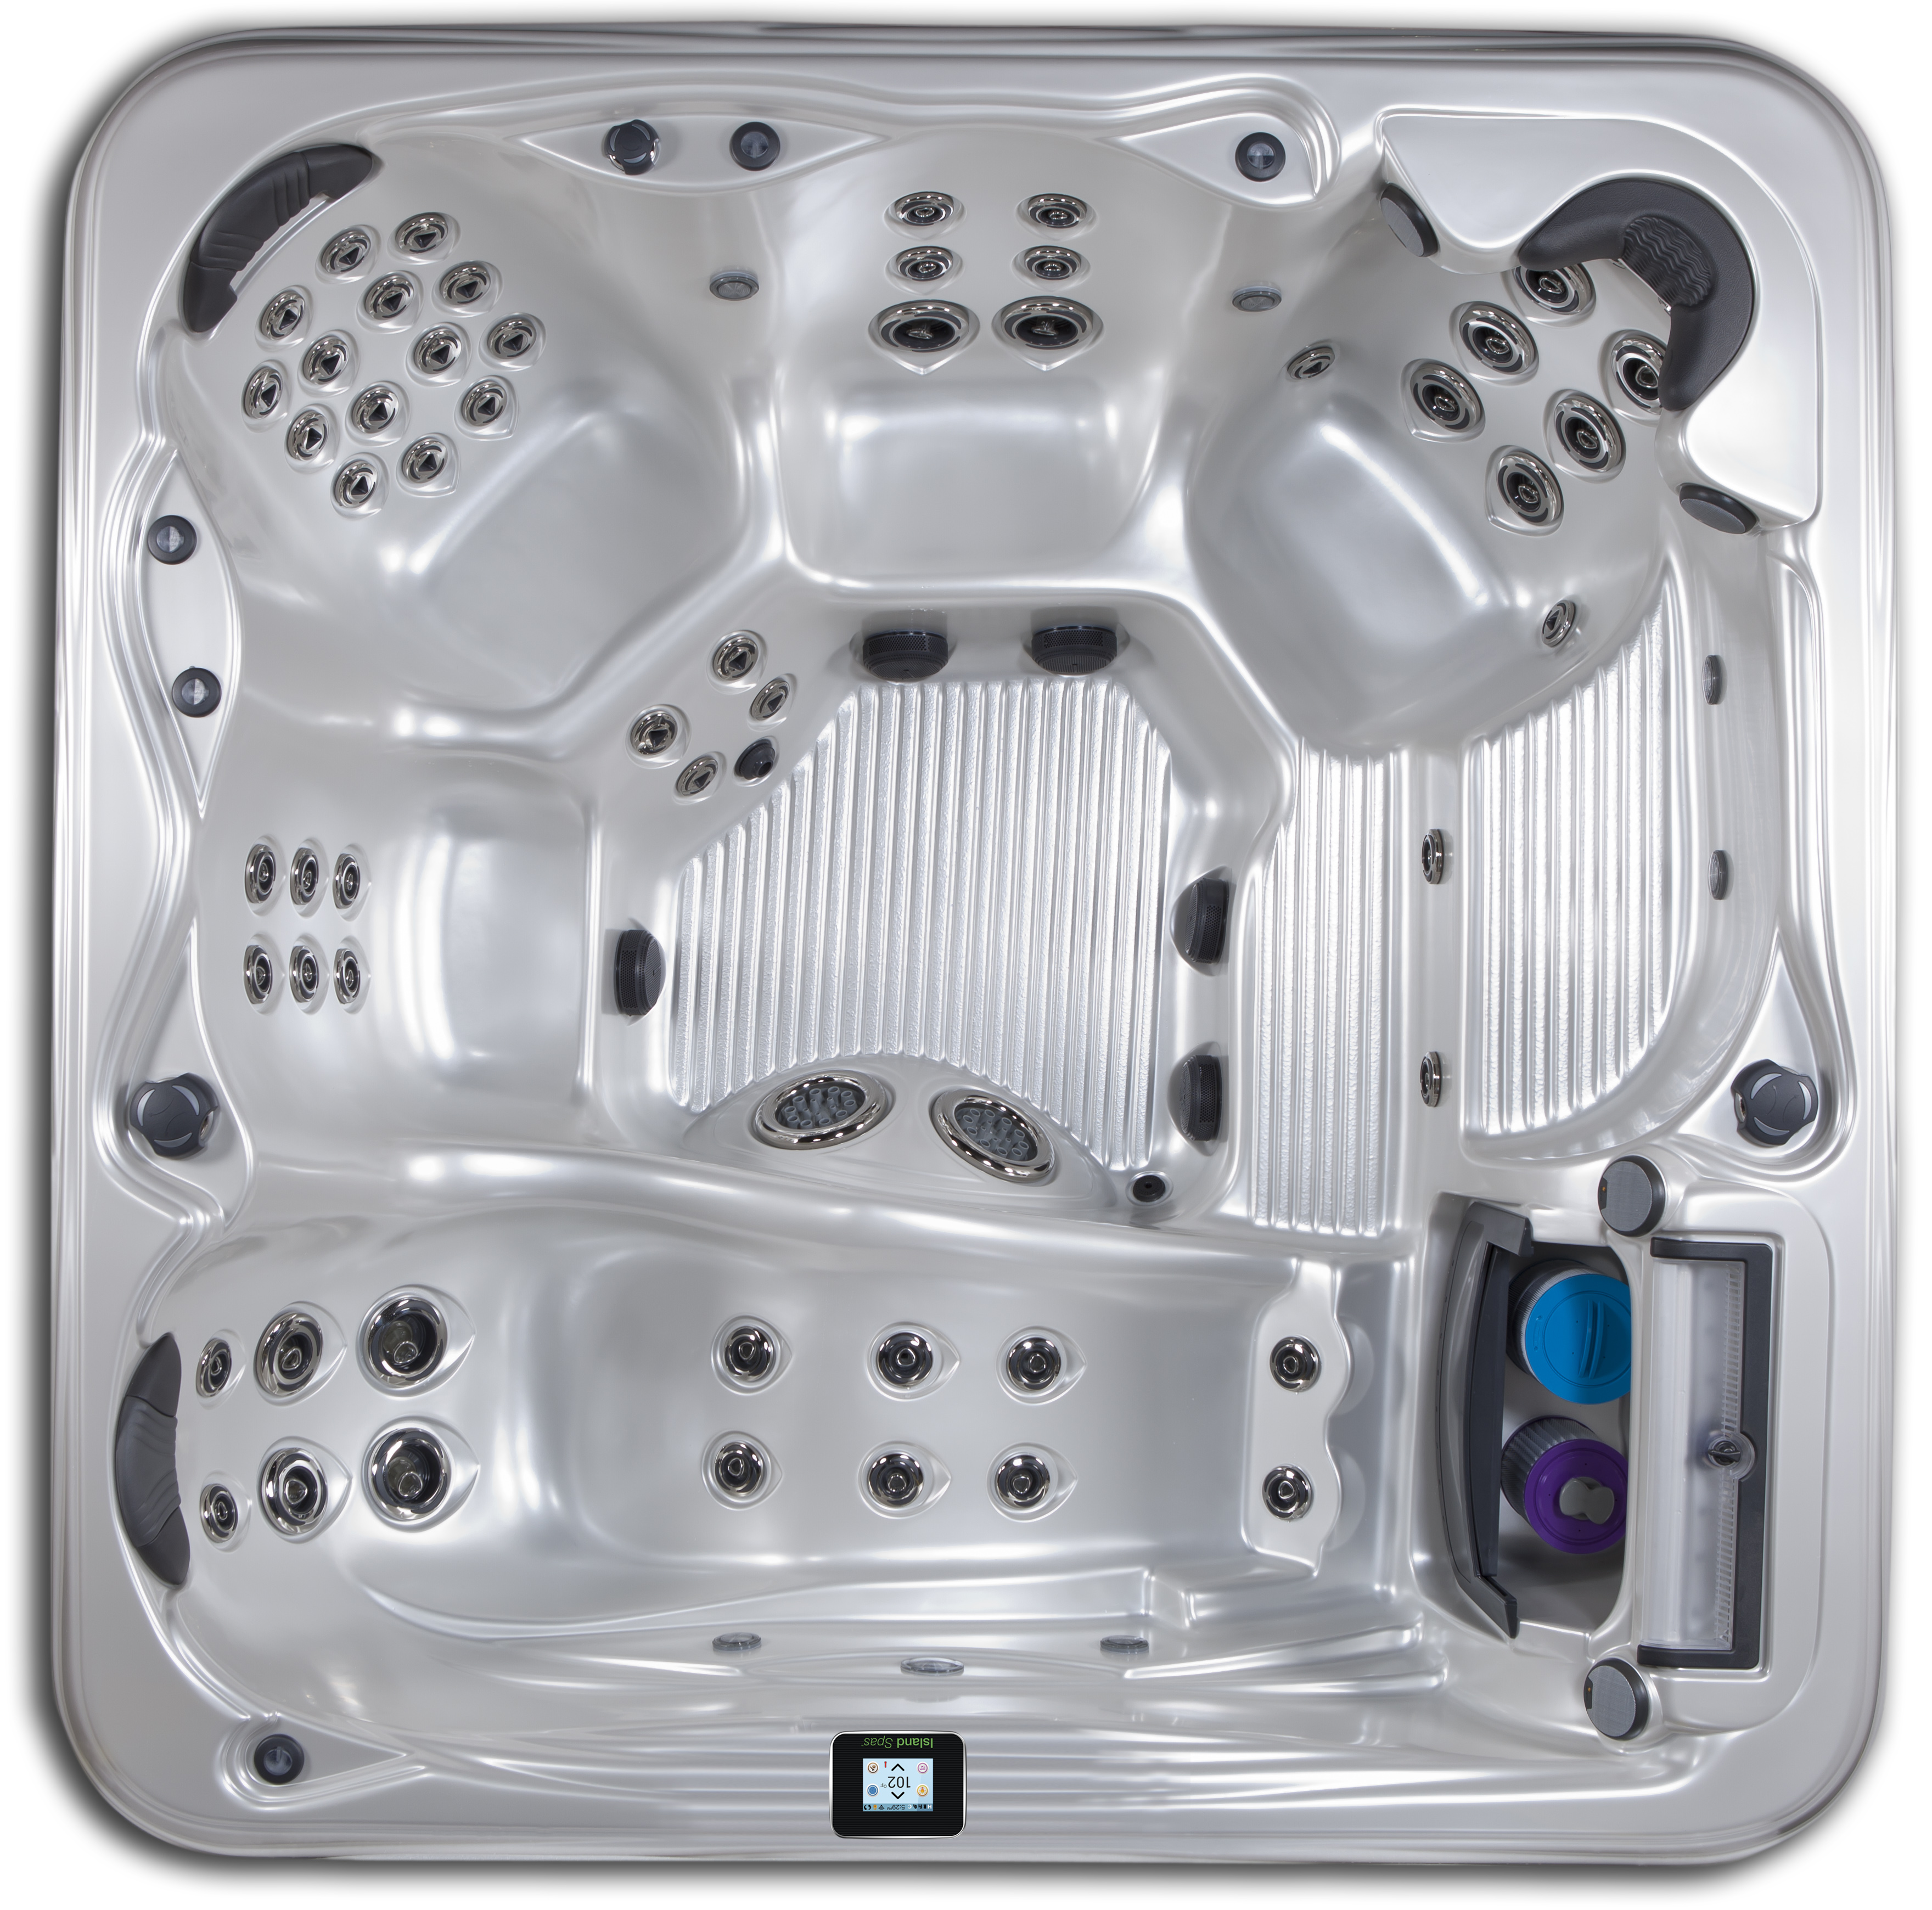 Grand Bahama hot tub with 6 seats and up to 62 jets